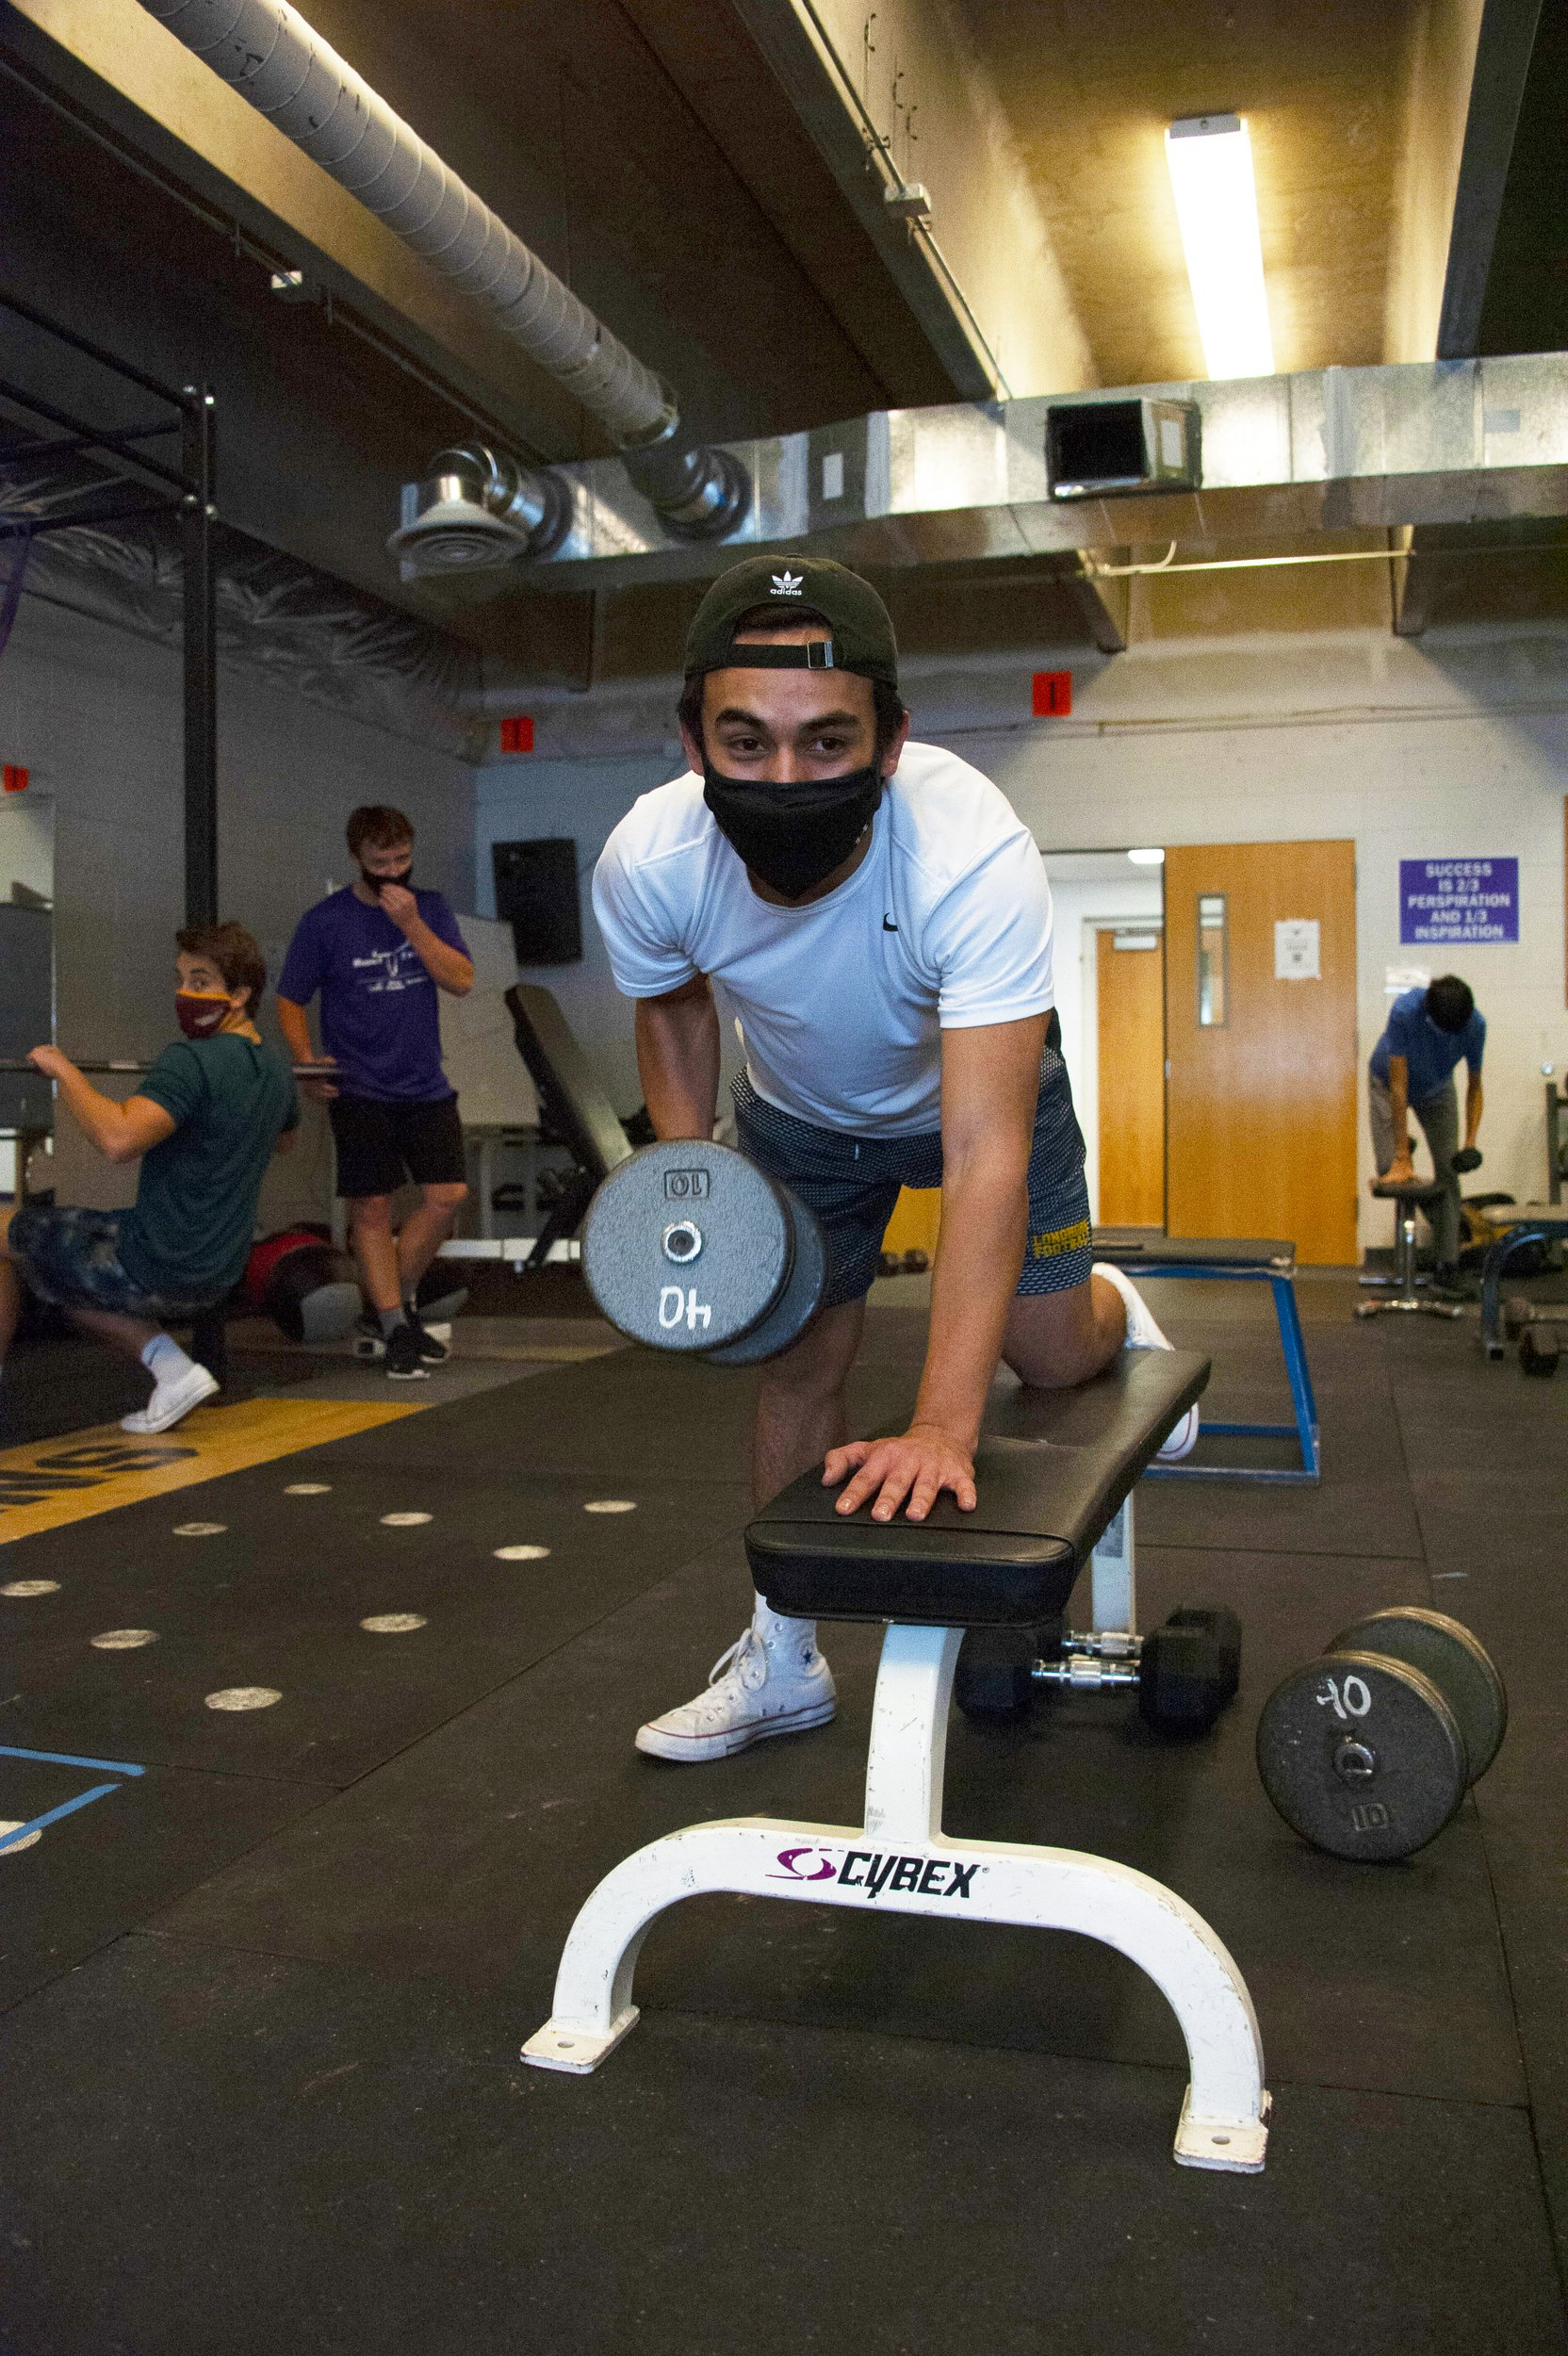 Senior Rulbe Alvarado, who made the all-state team as a Longhorns varsity junior, lifts at the gym as team members watch: junior Sam Sherry, wide receiver and linebacker, and sophomore Trevin Beckman, running back and linebacker. Photo by Roberta McGowan.